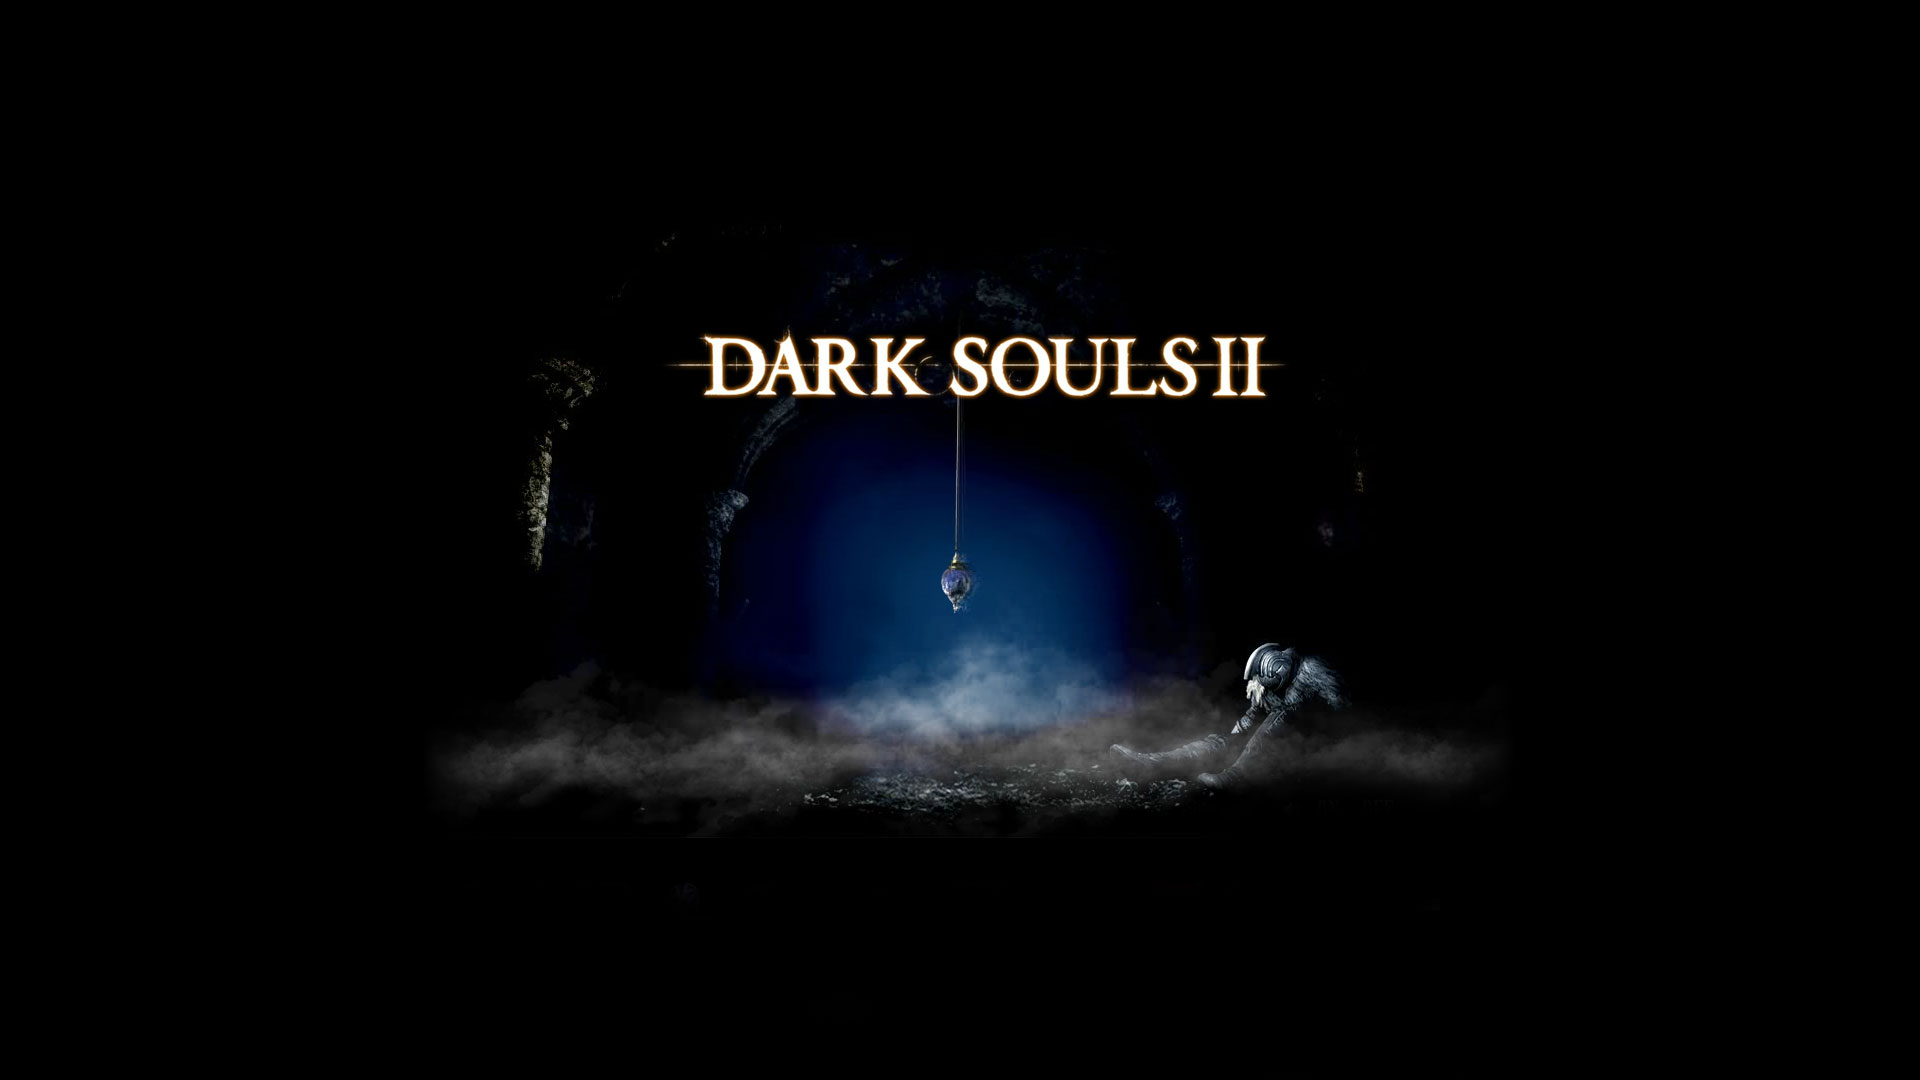 48 Dark Souls 2 Wallpaper 1920x1080 On Wallpapersafari